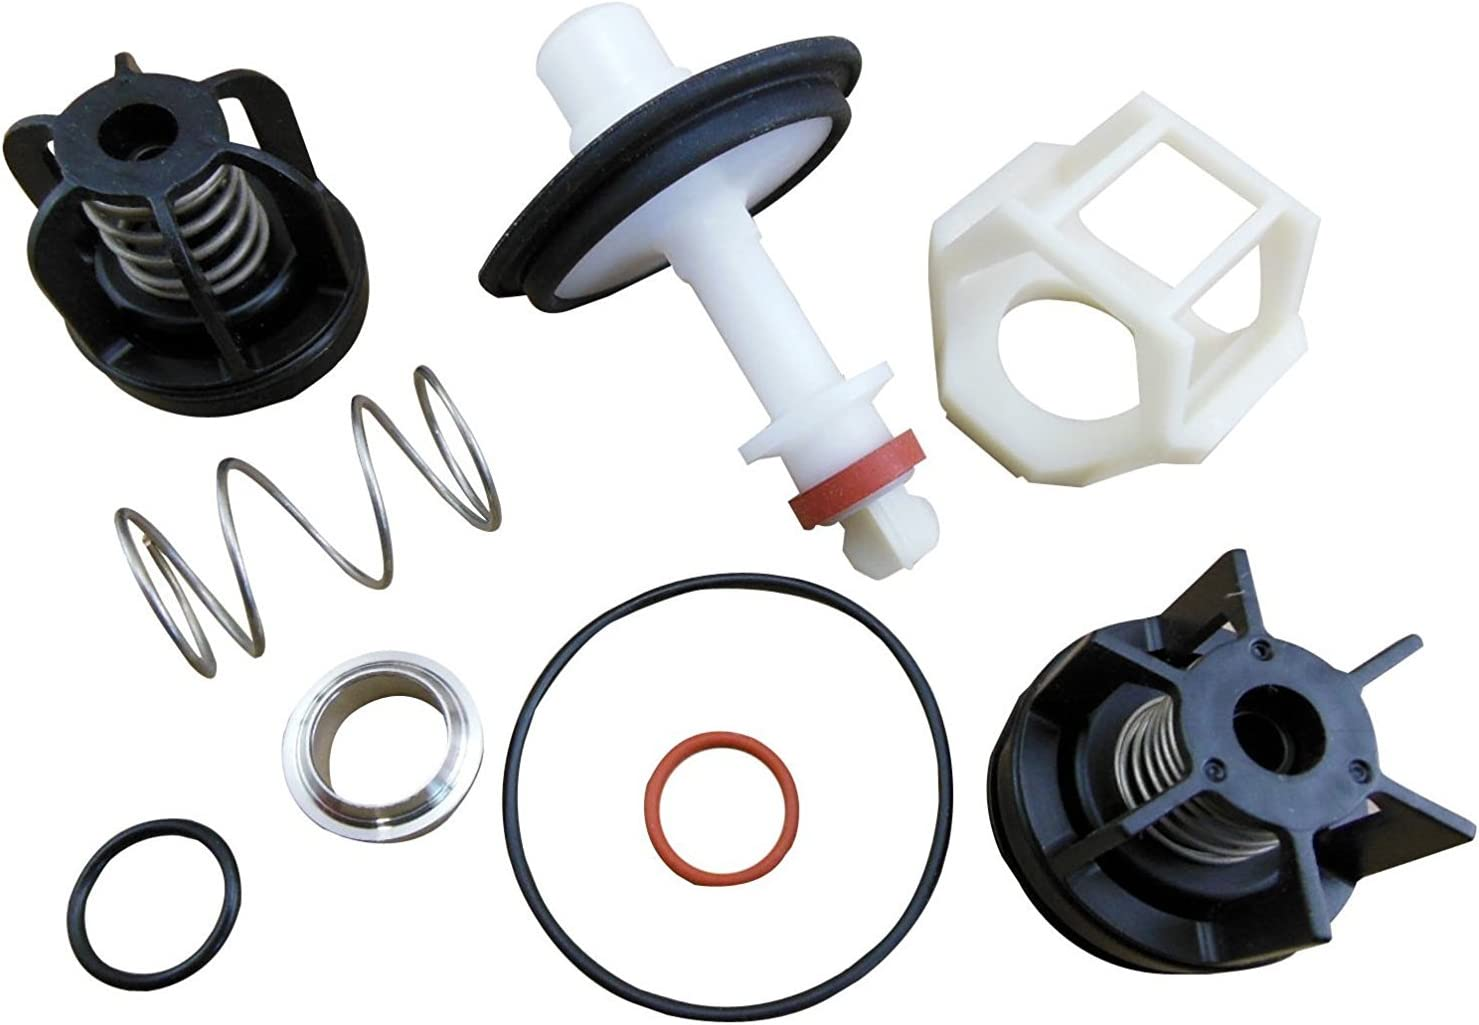 Watts 3//4 009M3 Total Relief Valve Kit Assembly 0888524 888524 RK 009M3 VT